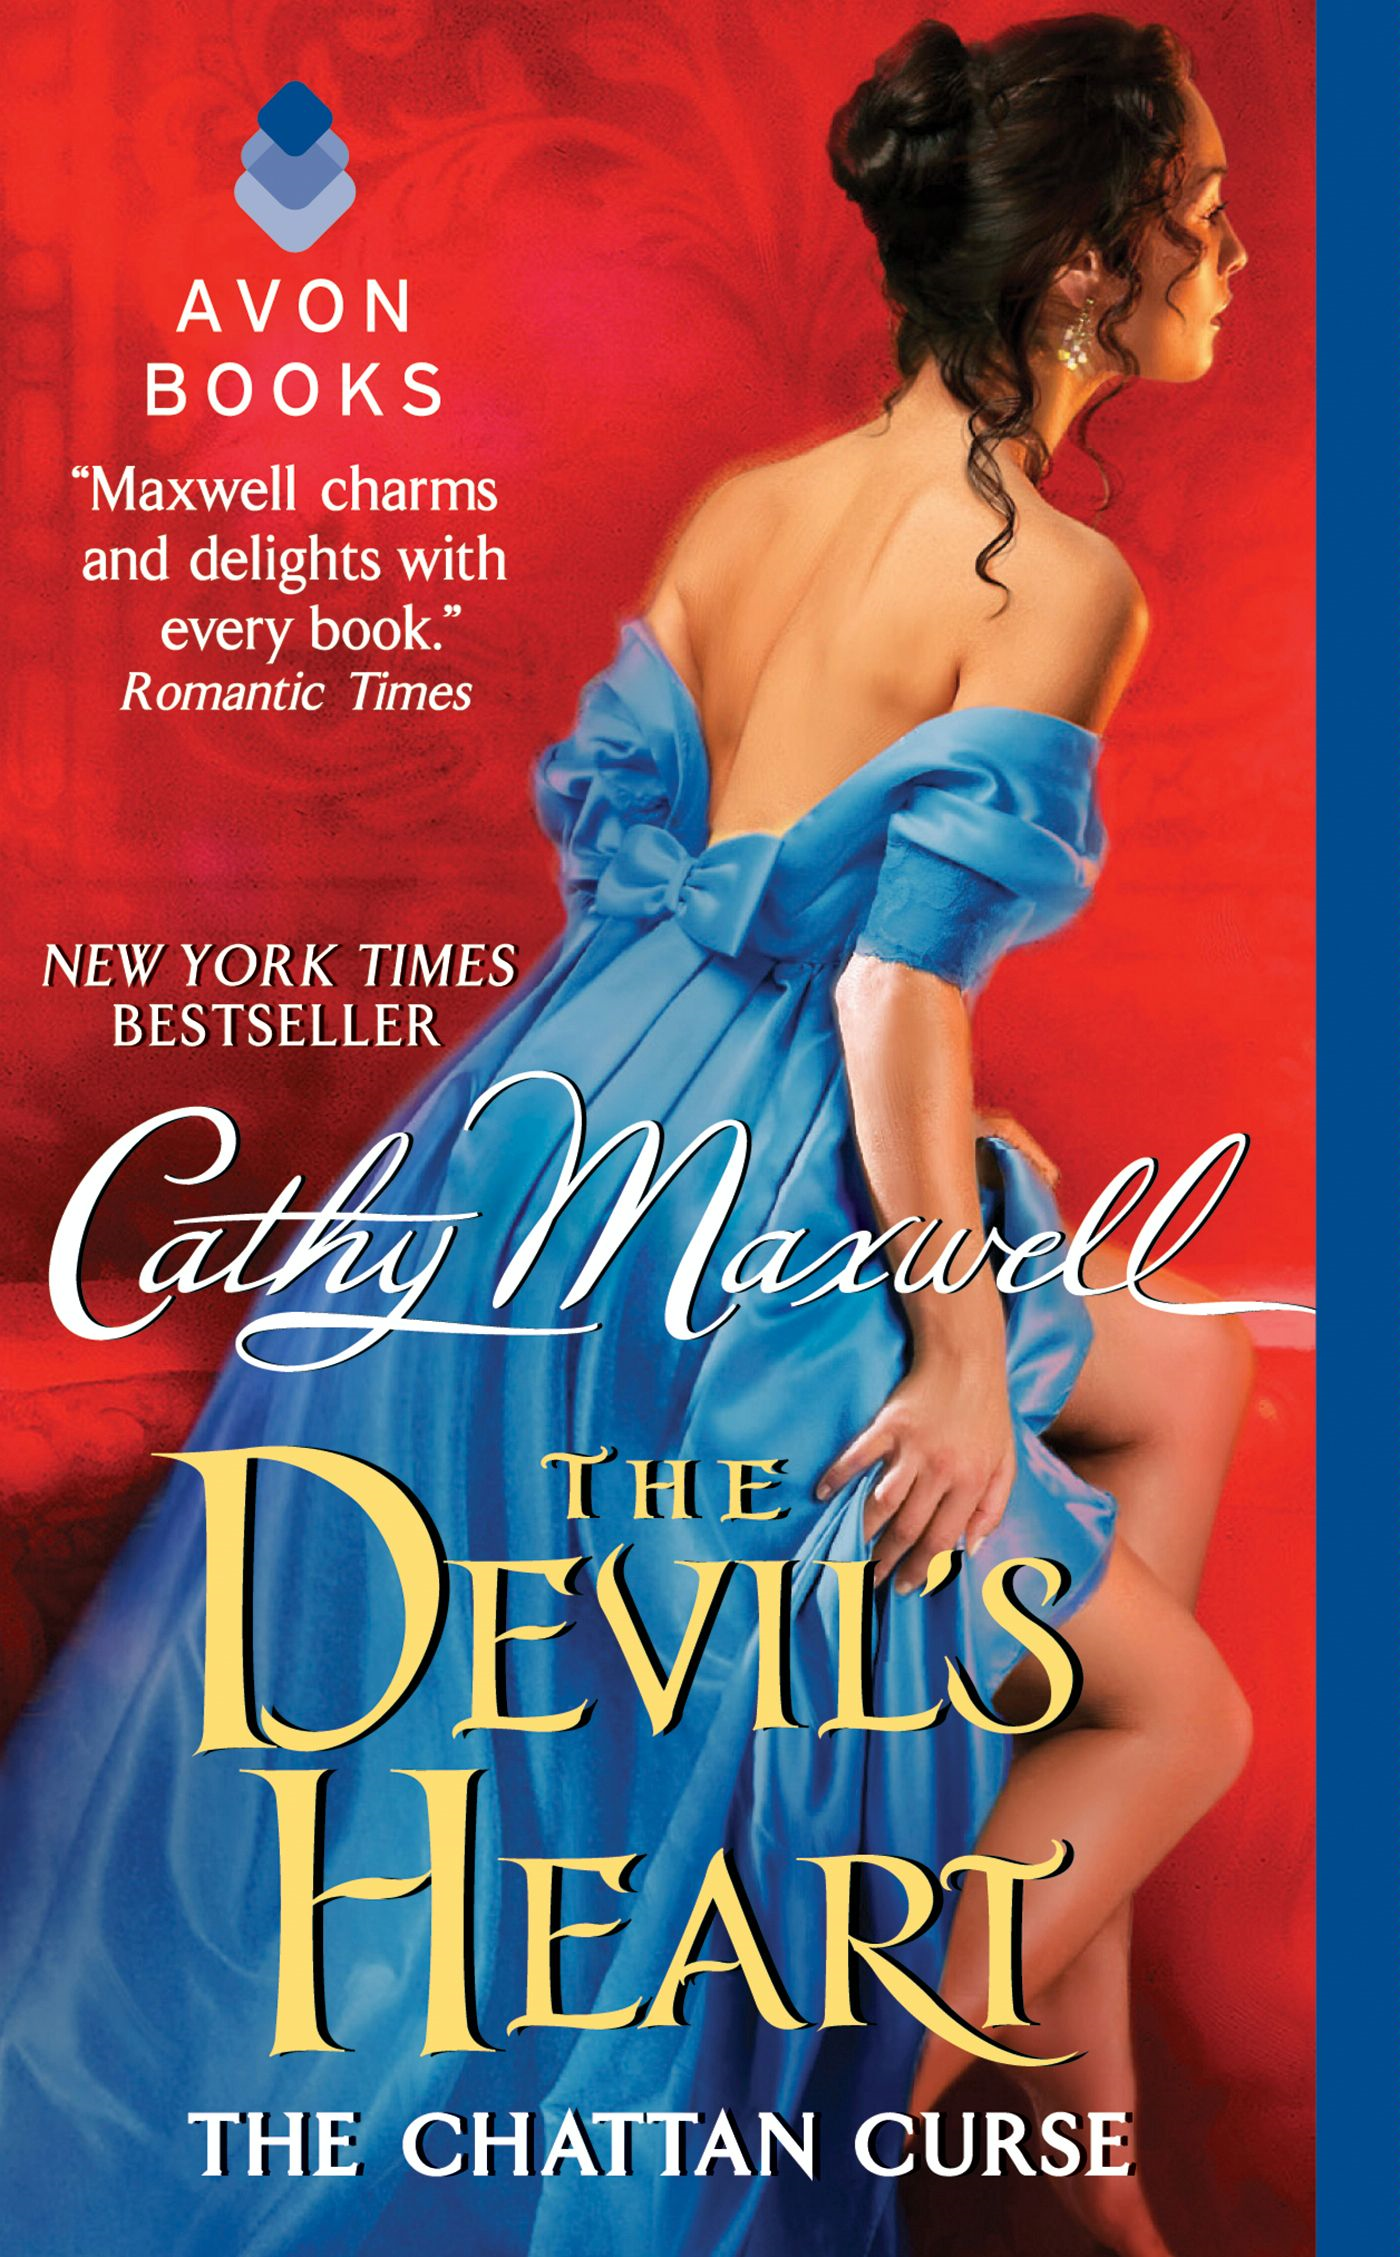 The Devil's Heart: The Chattan Curse